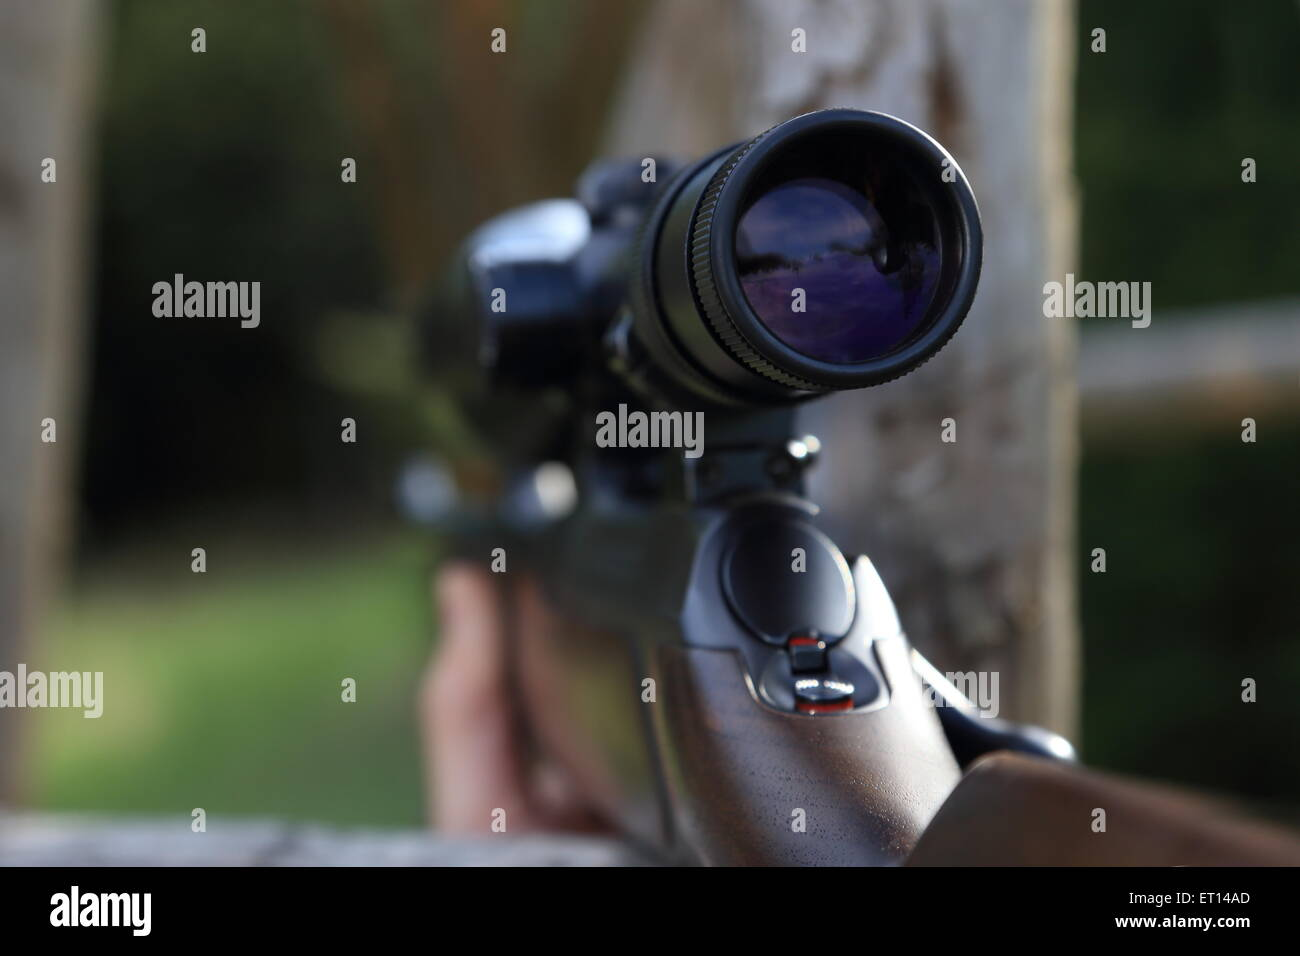 A Scope of a hunting rifle gun - Stock Image